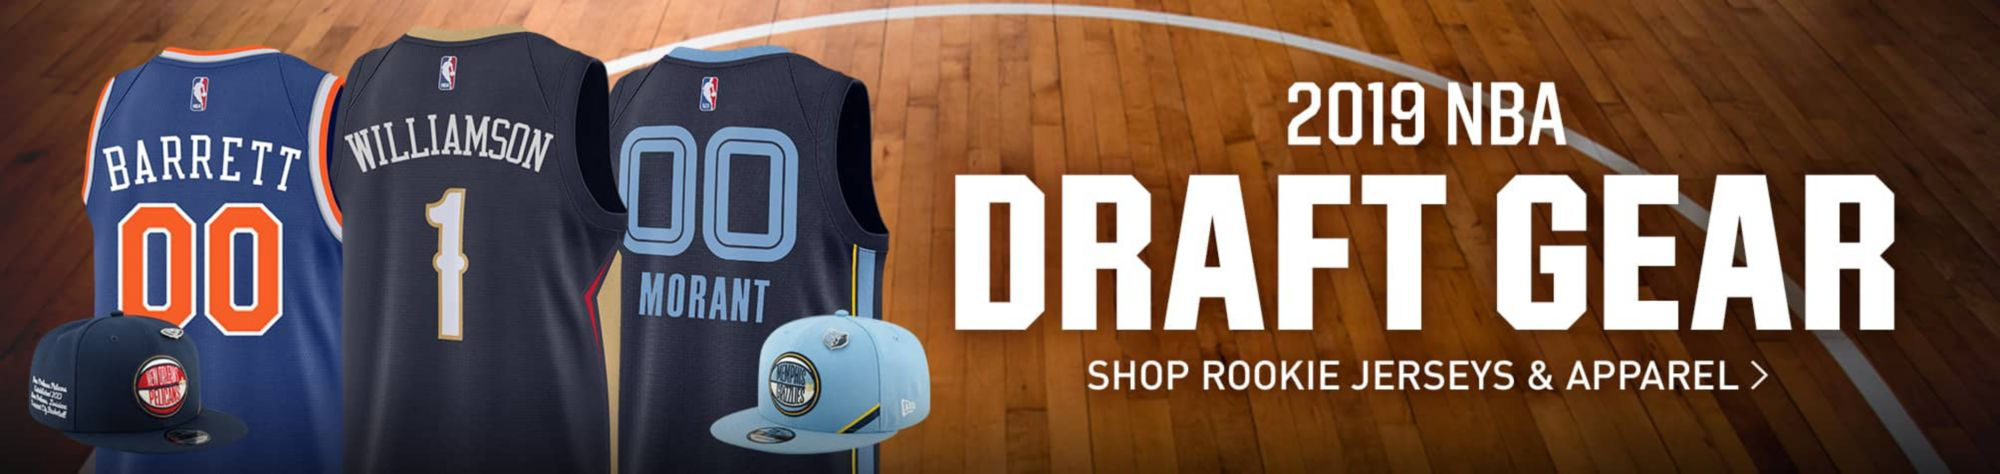 2019 NBA Draft Gear - Shop Rookie Jerseys and Apparel